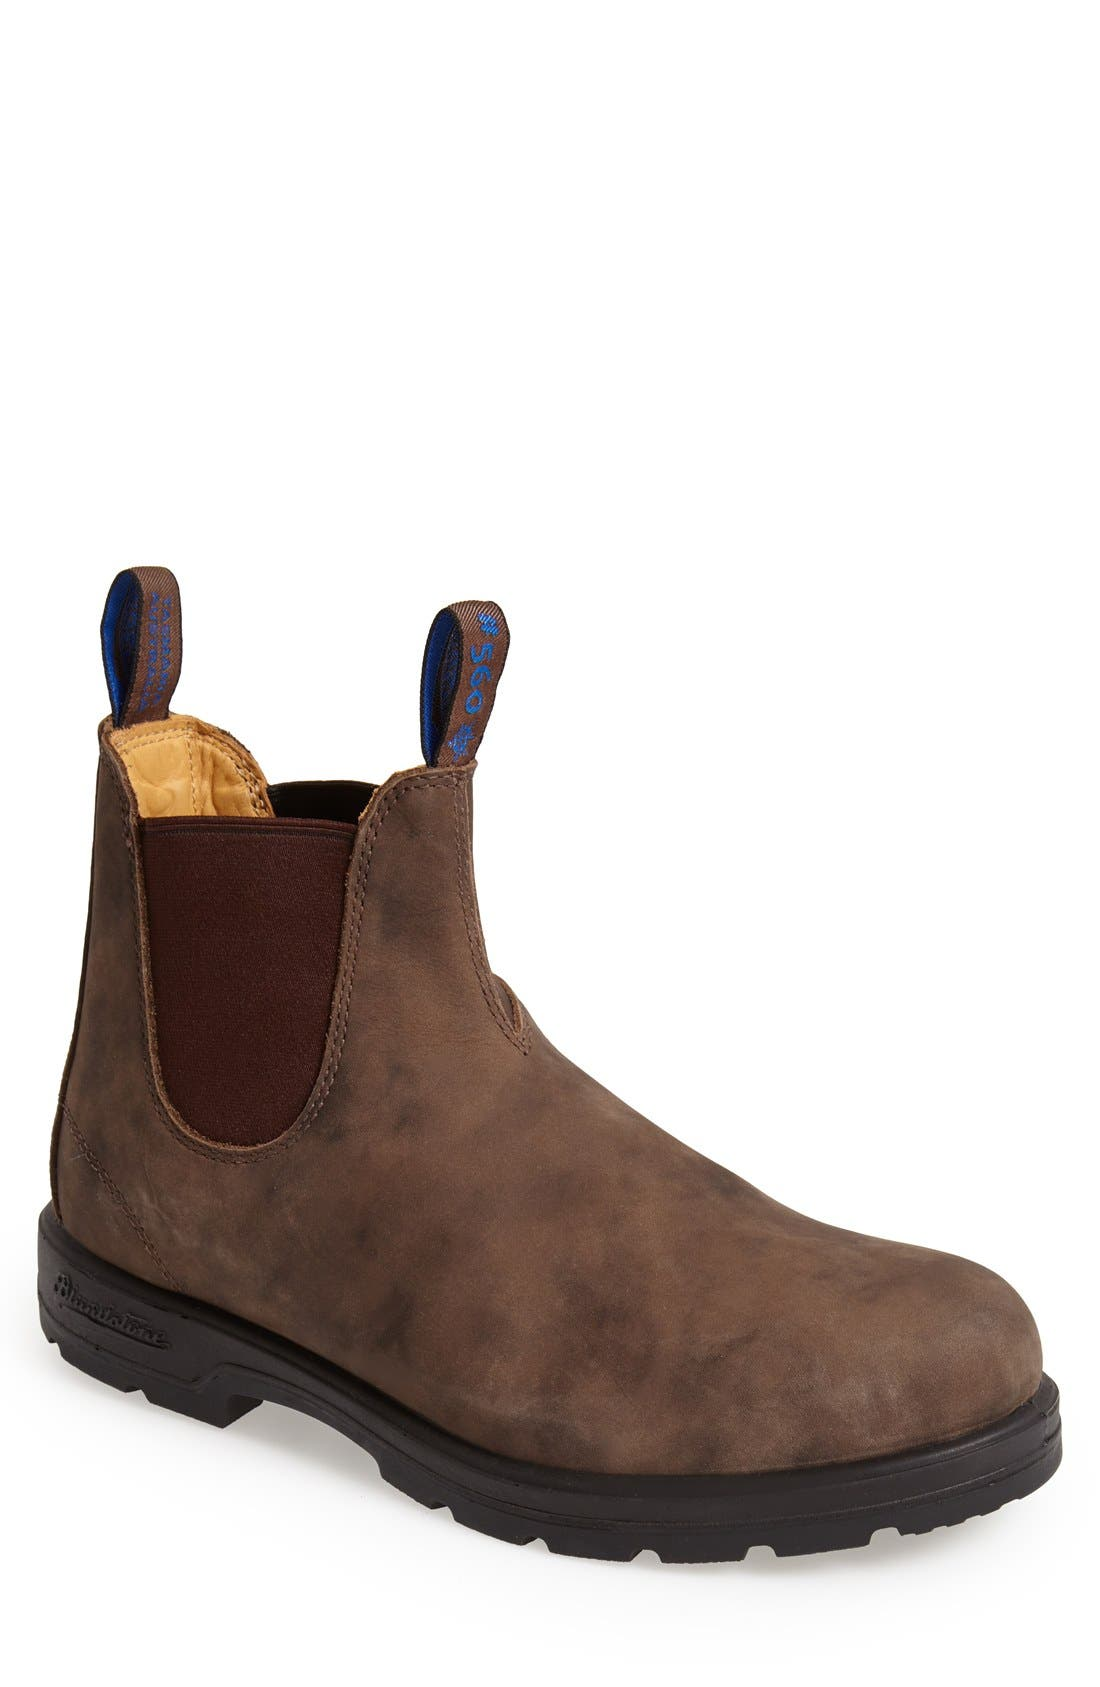 Blundstone Footwear Waterproof Chelsea Boot (Men)